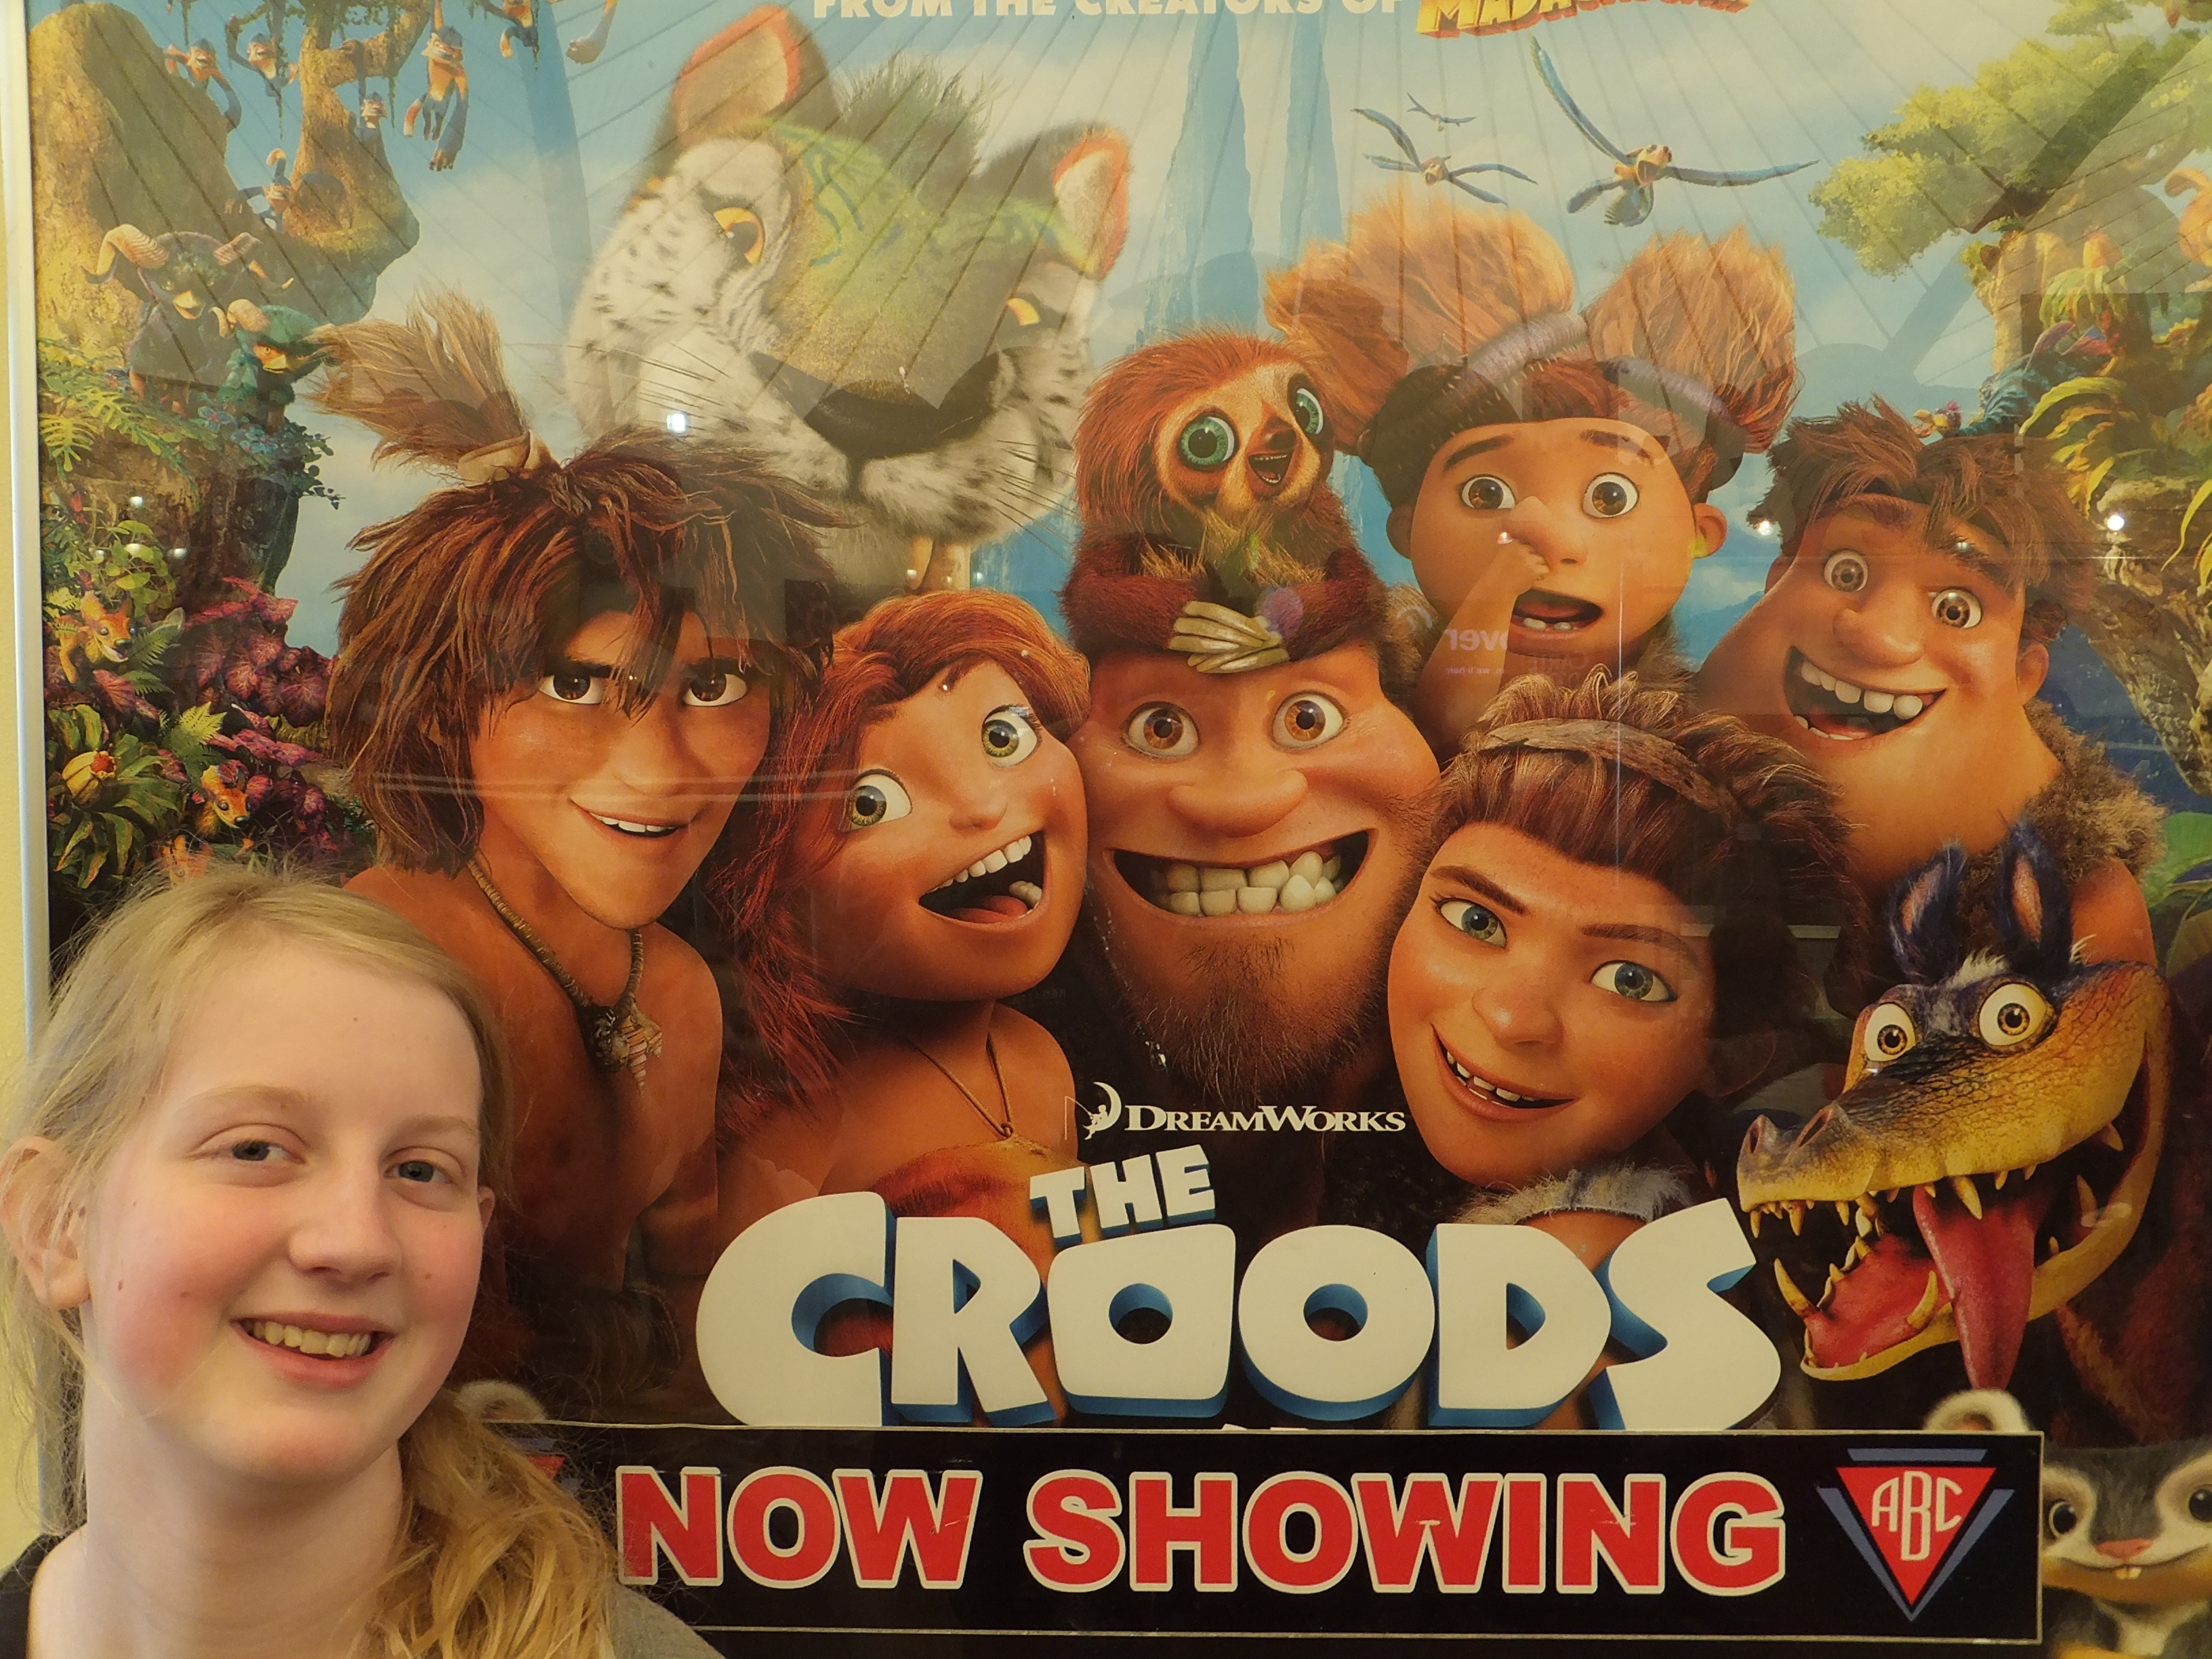 Butlins Skegness Daytime Activities cinema showing The Croods